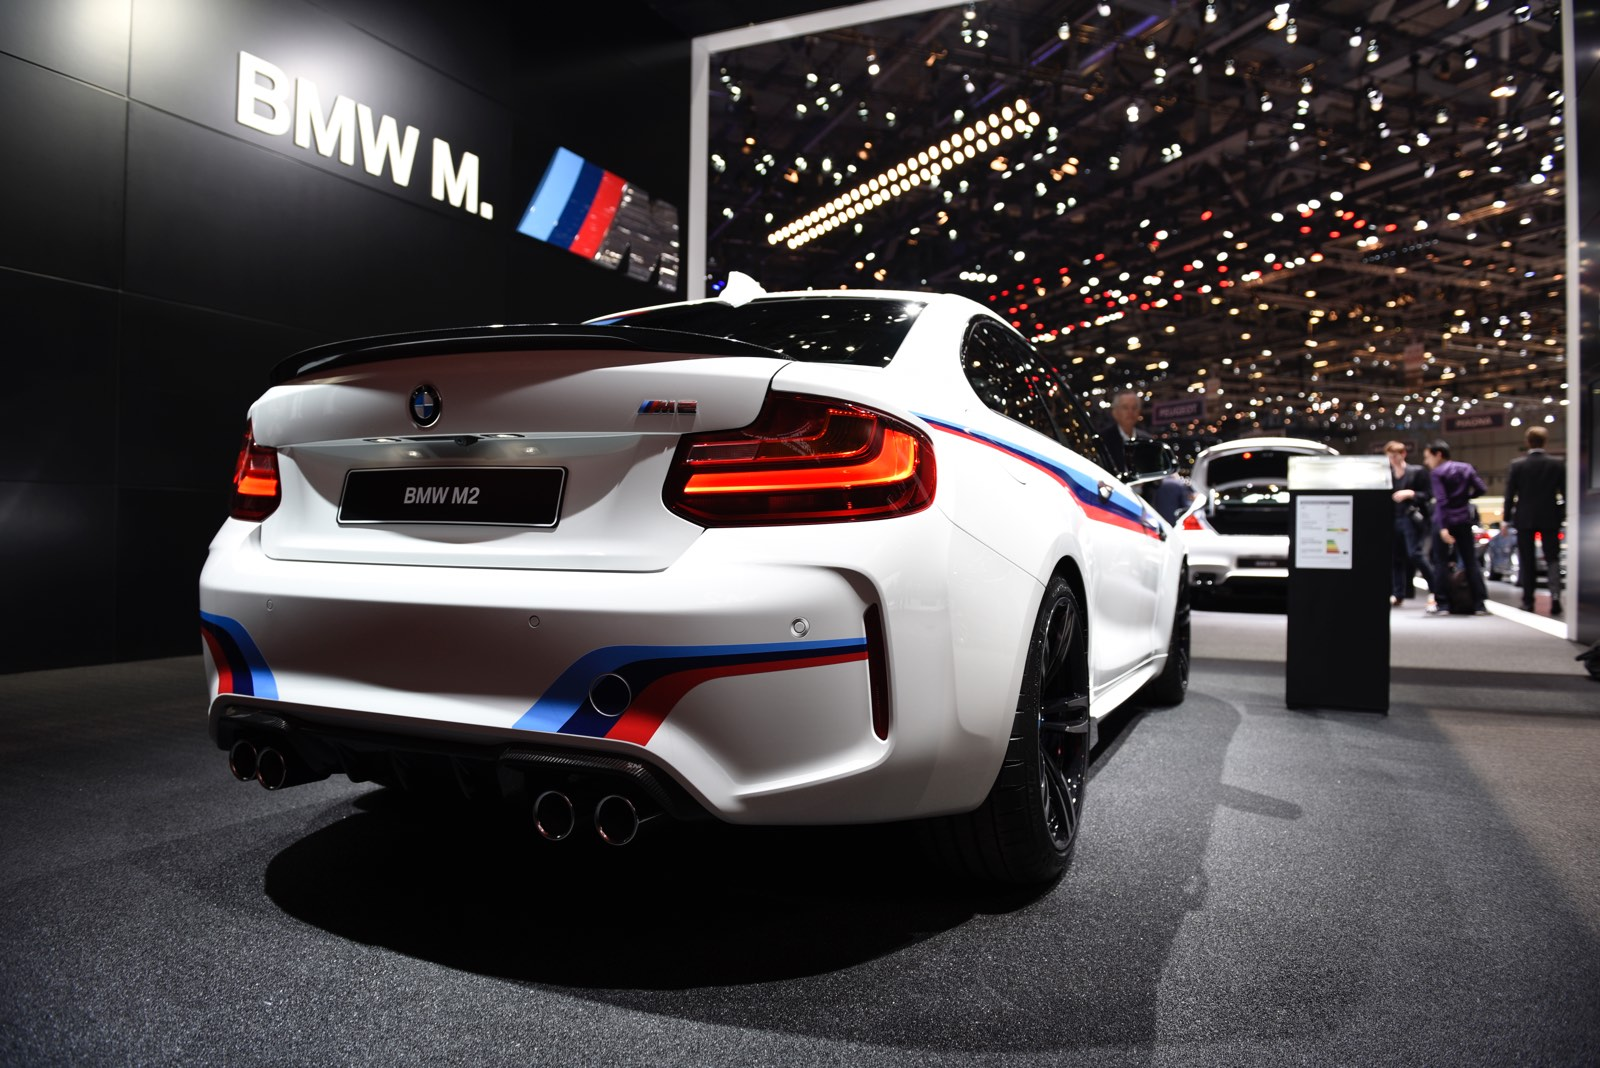 Geneva 2016 Bmw M2 With Bmw M Performance Parts Gtspirit